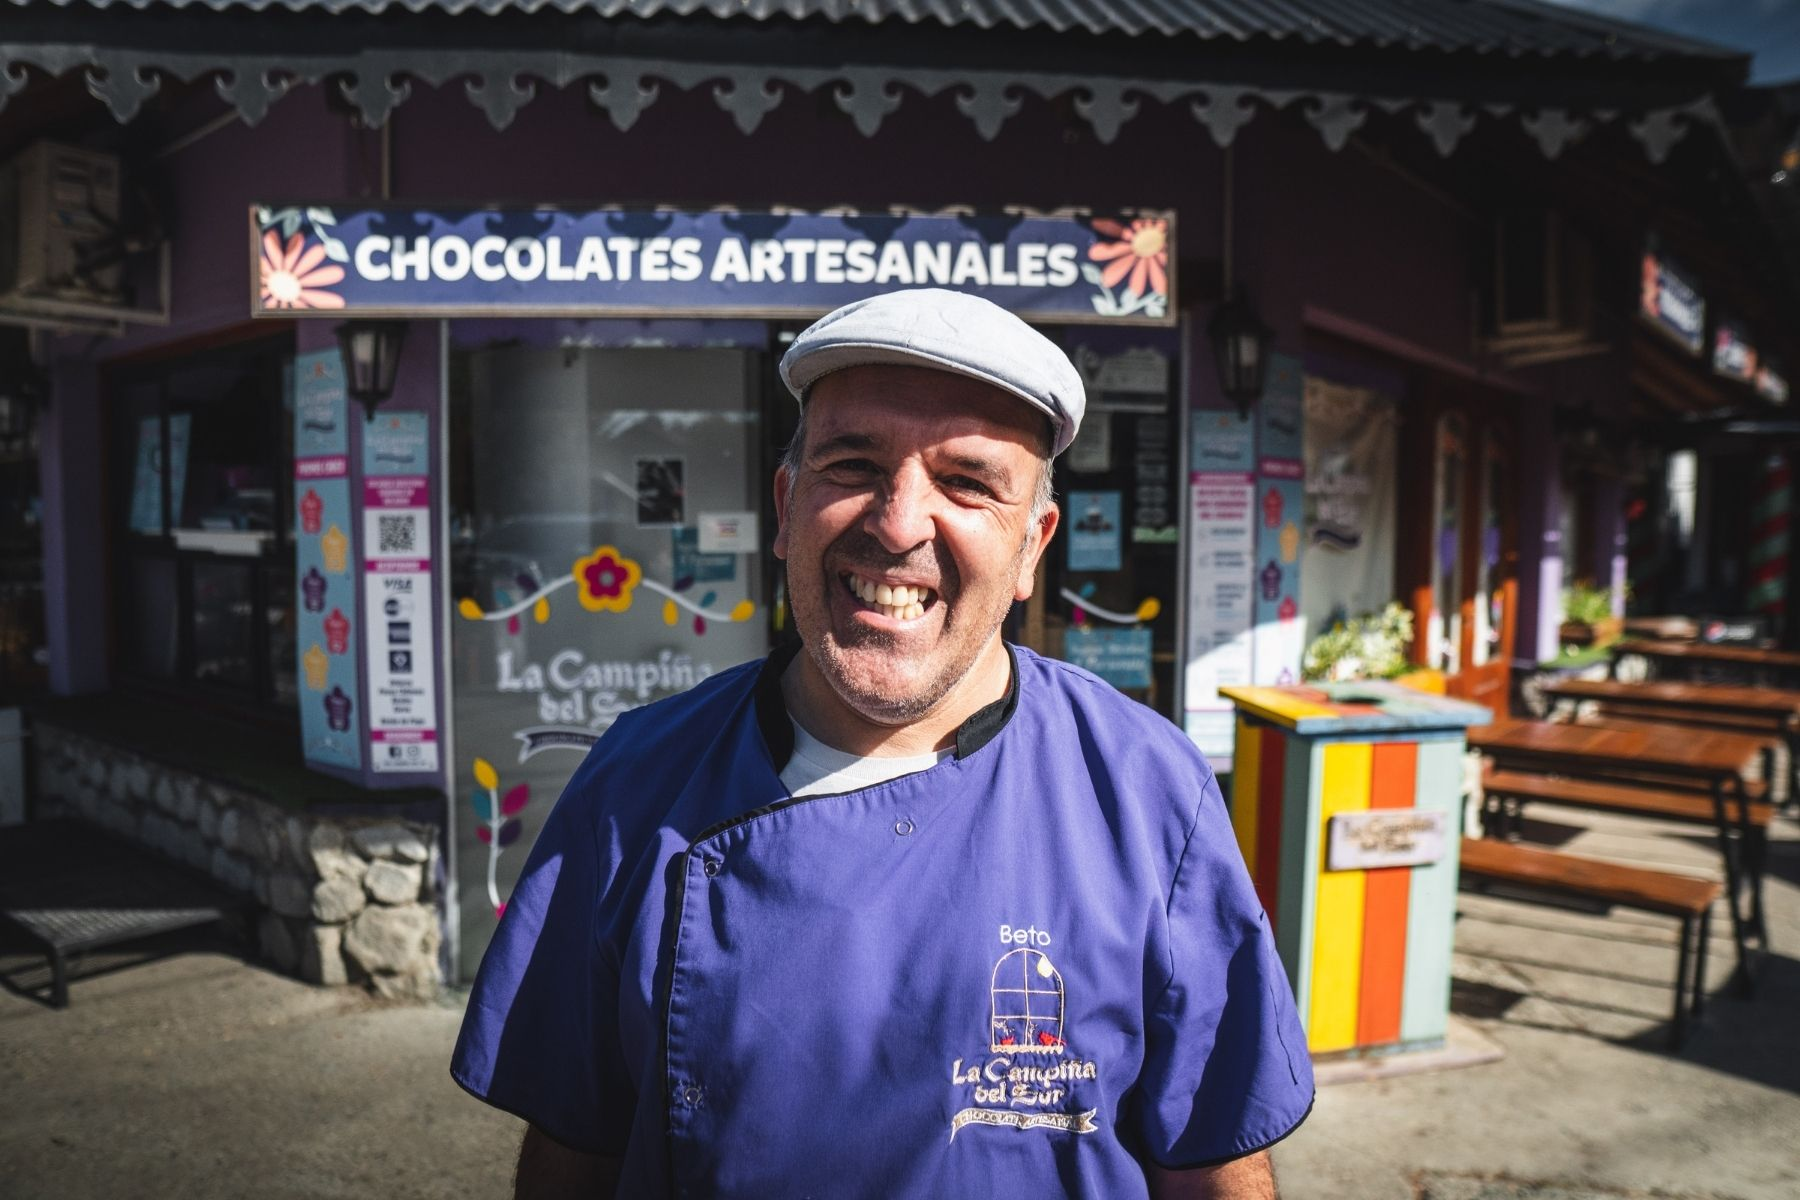 beto - is - the - owner - of - a - shop - in - patagonia - that - sells - ice -cream - and -choclate